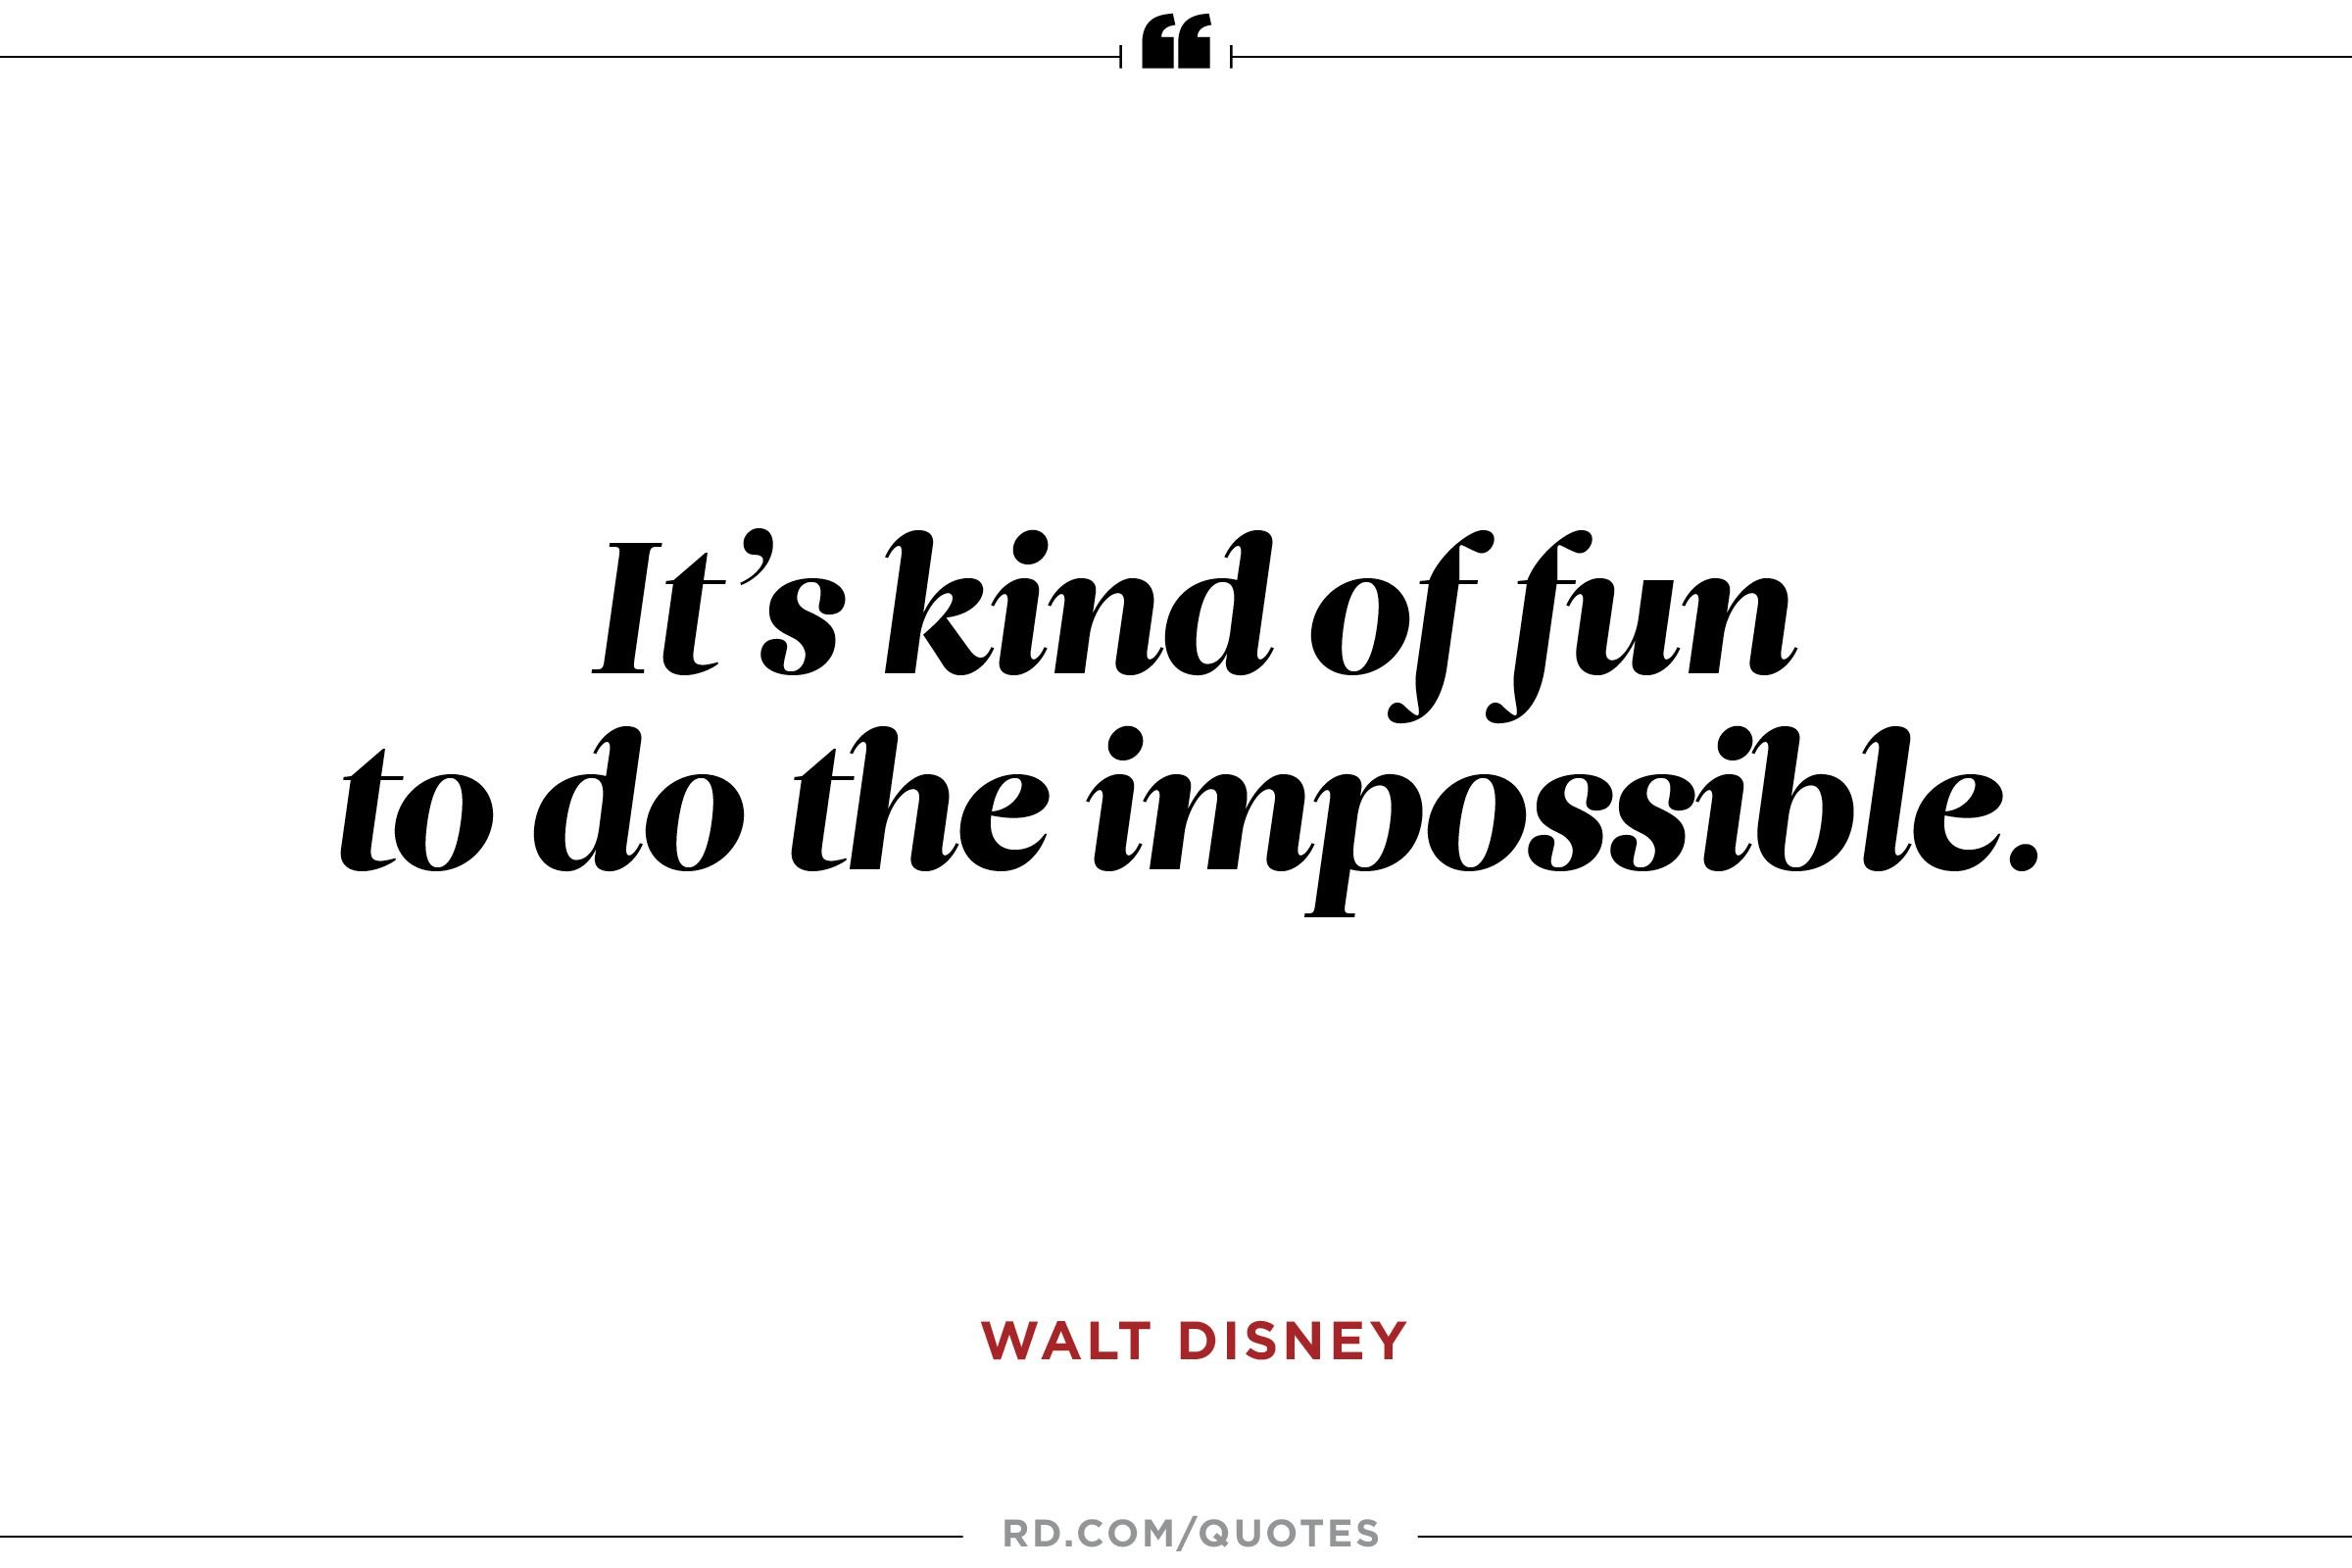 Quotes Disney 11 Inspiring Walt Disney Quotes  Reader's Digest